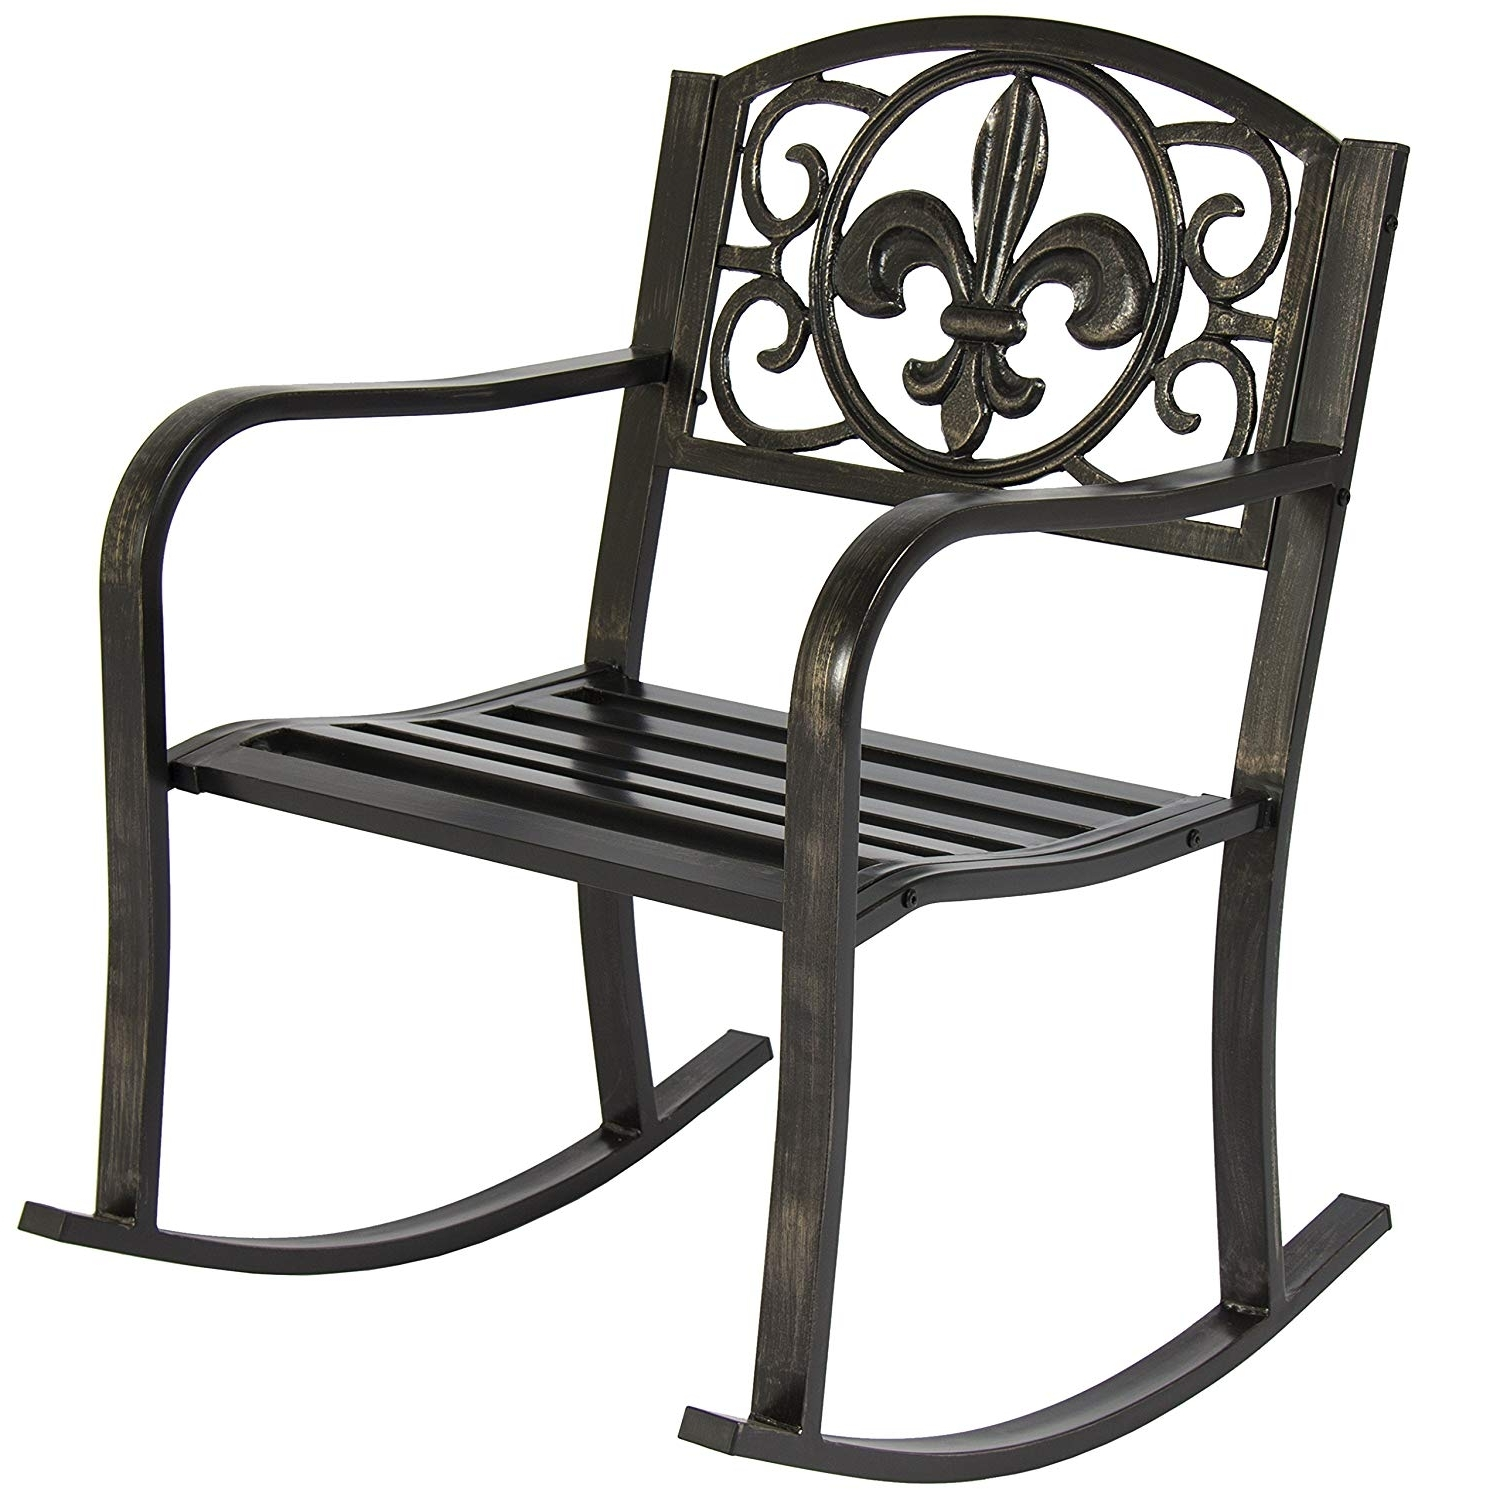 Most Recently Released Amazon : Best Choice Products Metal Rocking Chair Seat For Patio Regarding Patio Rocking Chairs (View 7 of 15)